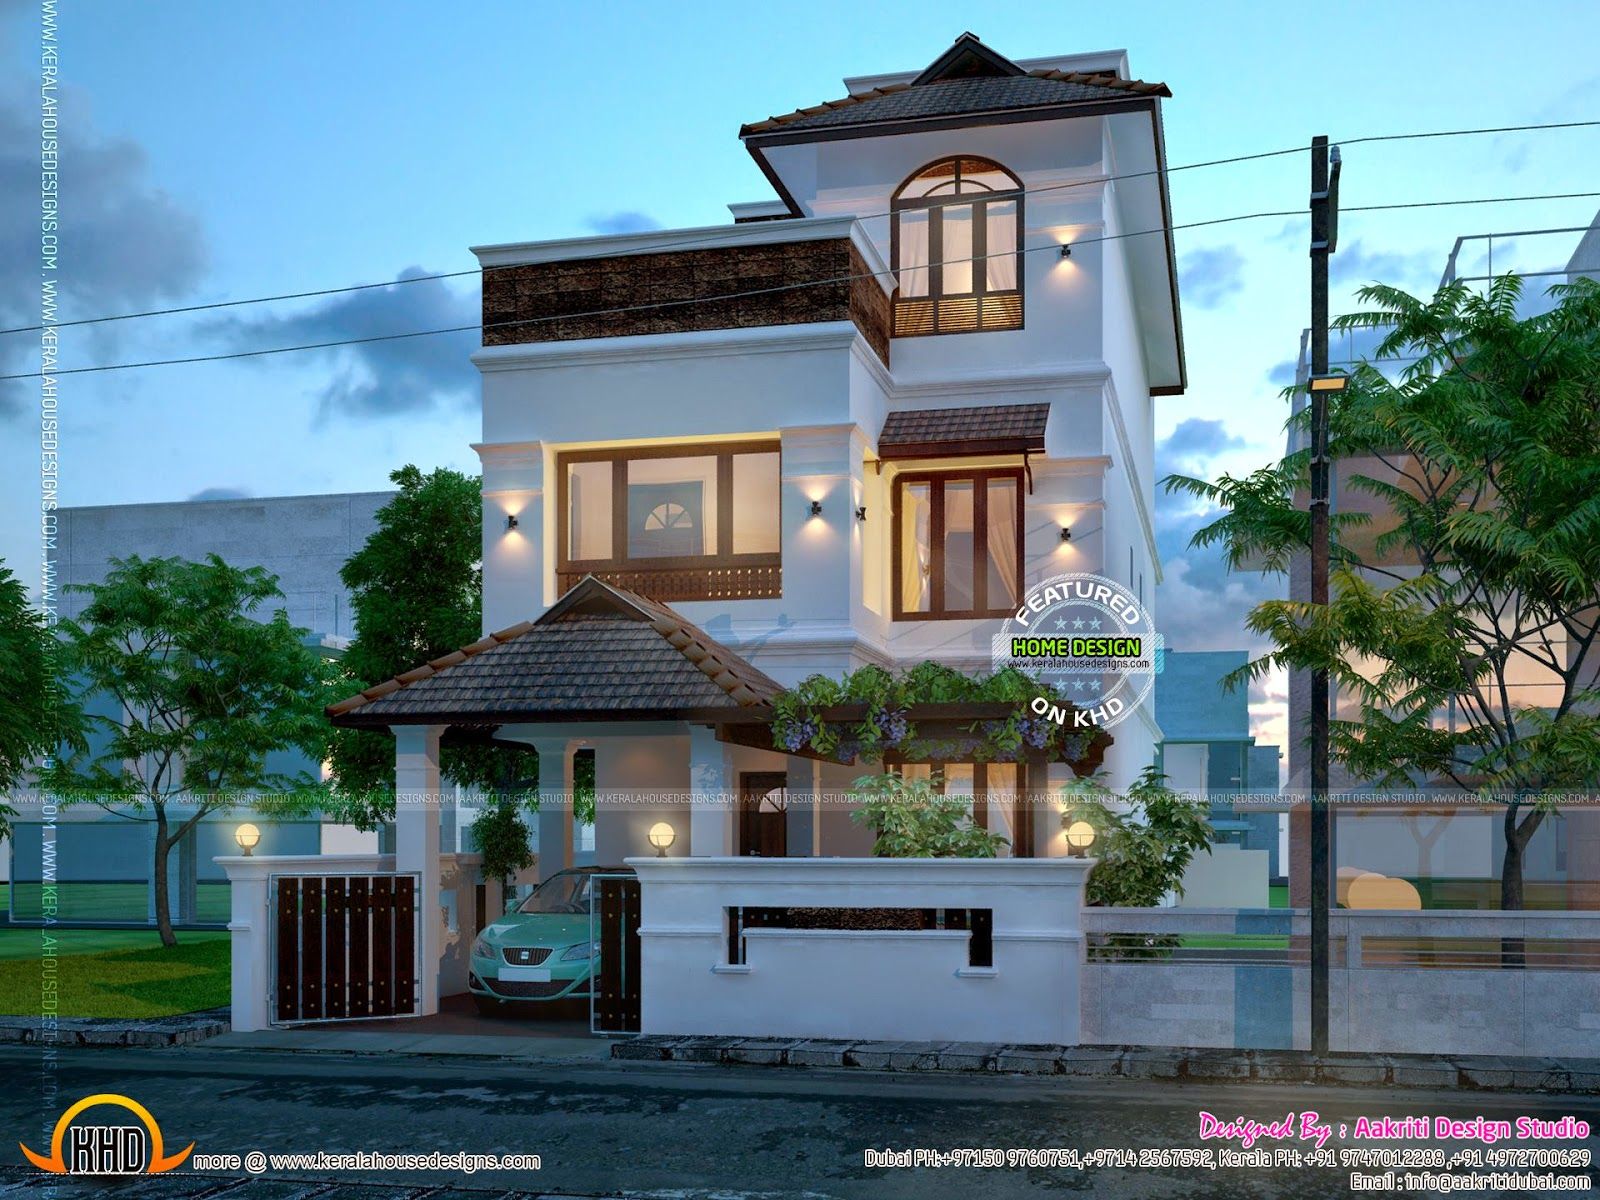 New house design kerala home design and floor plans for New home designs kerala